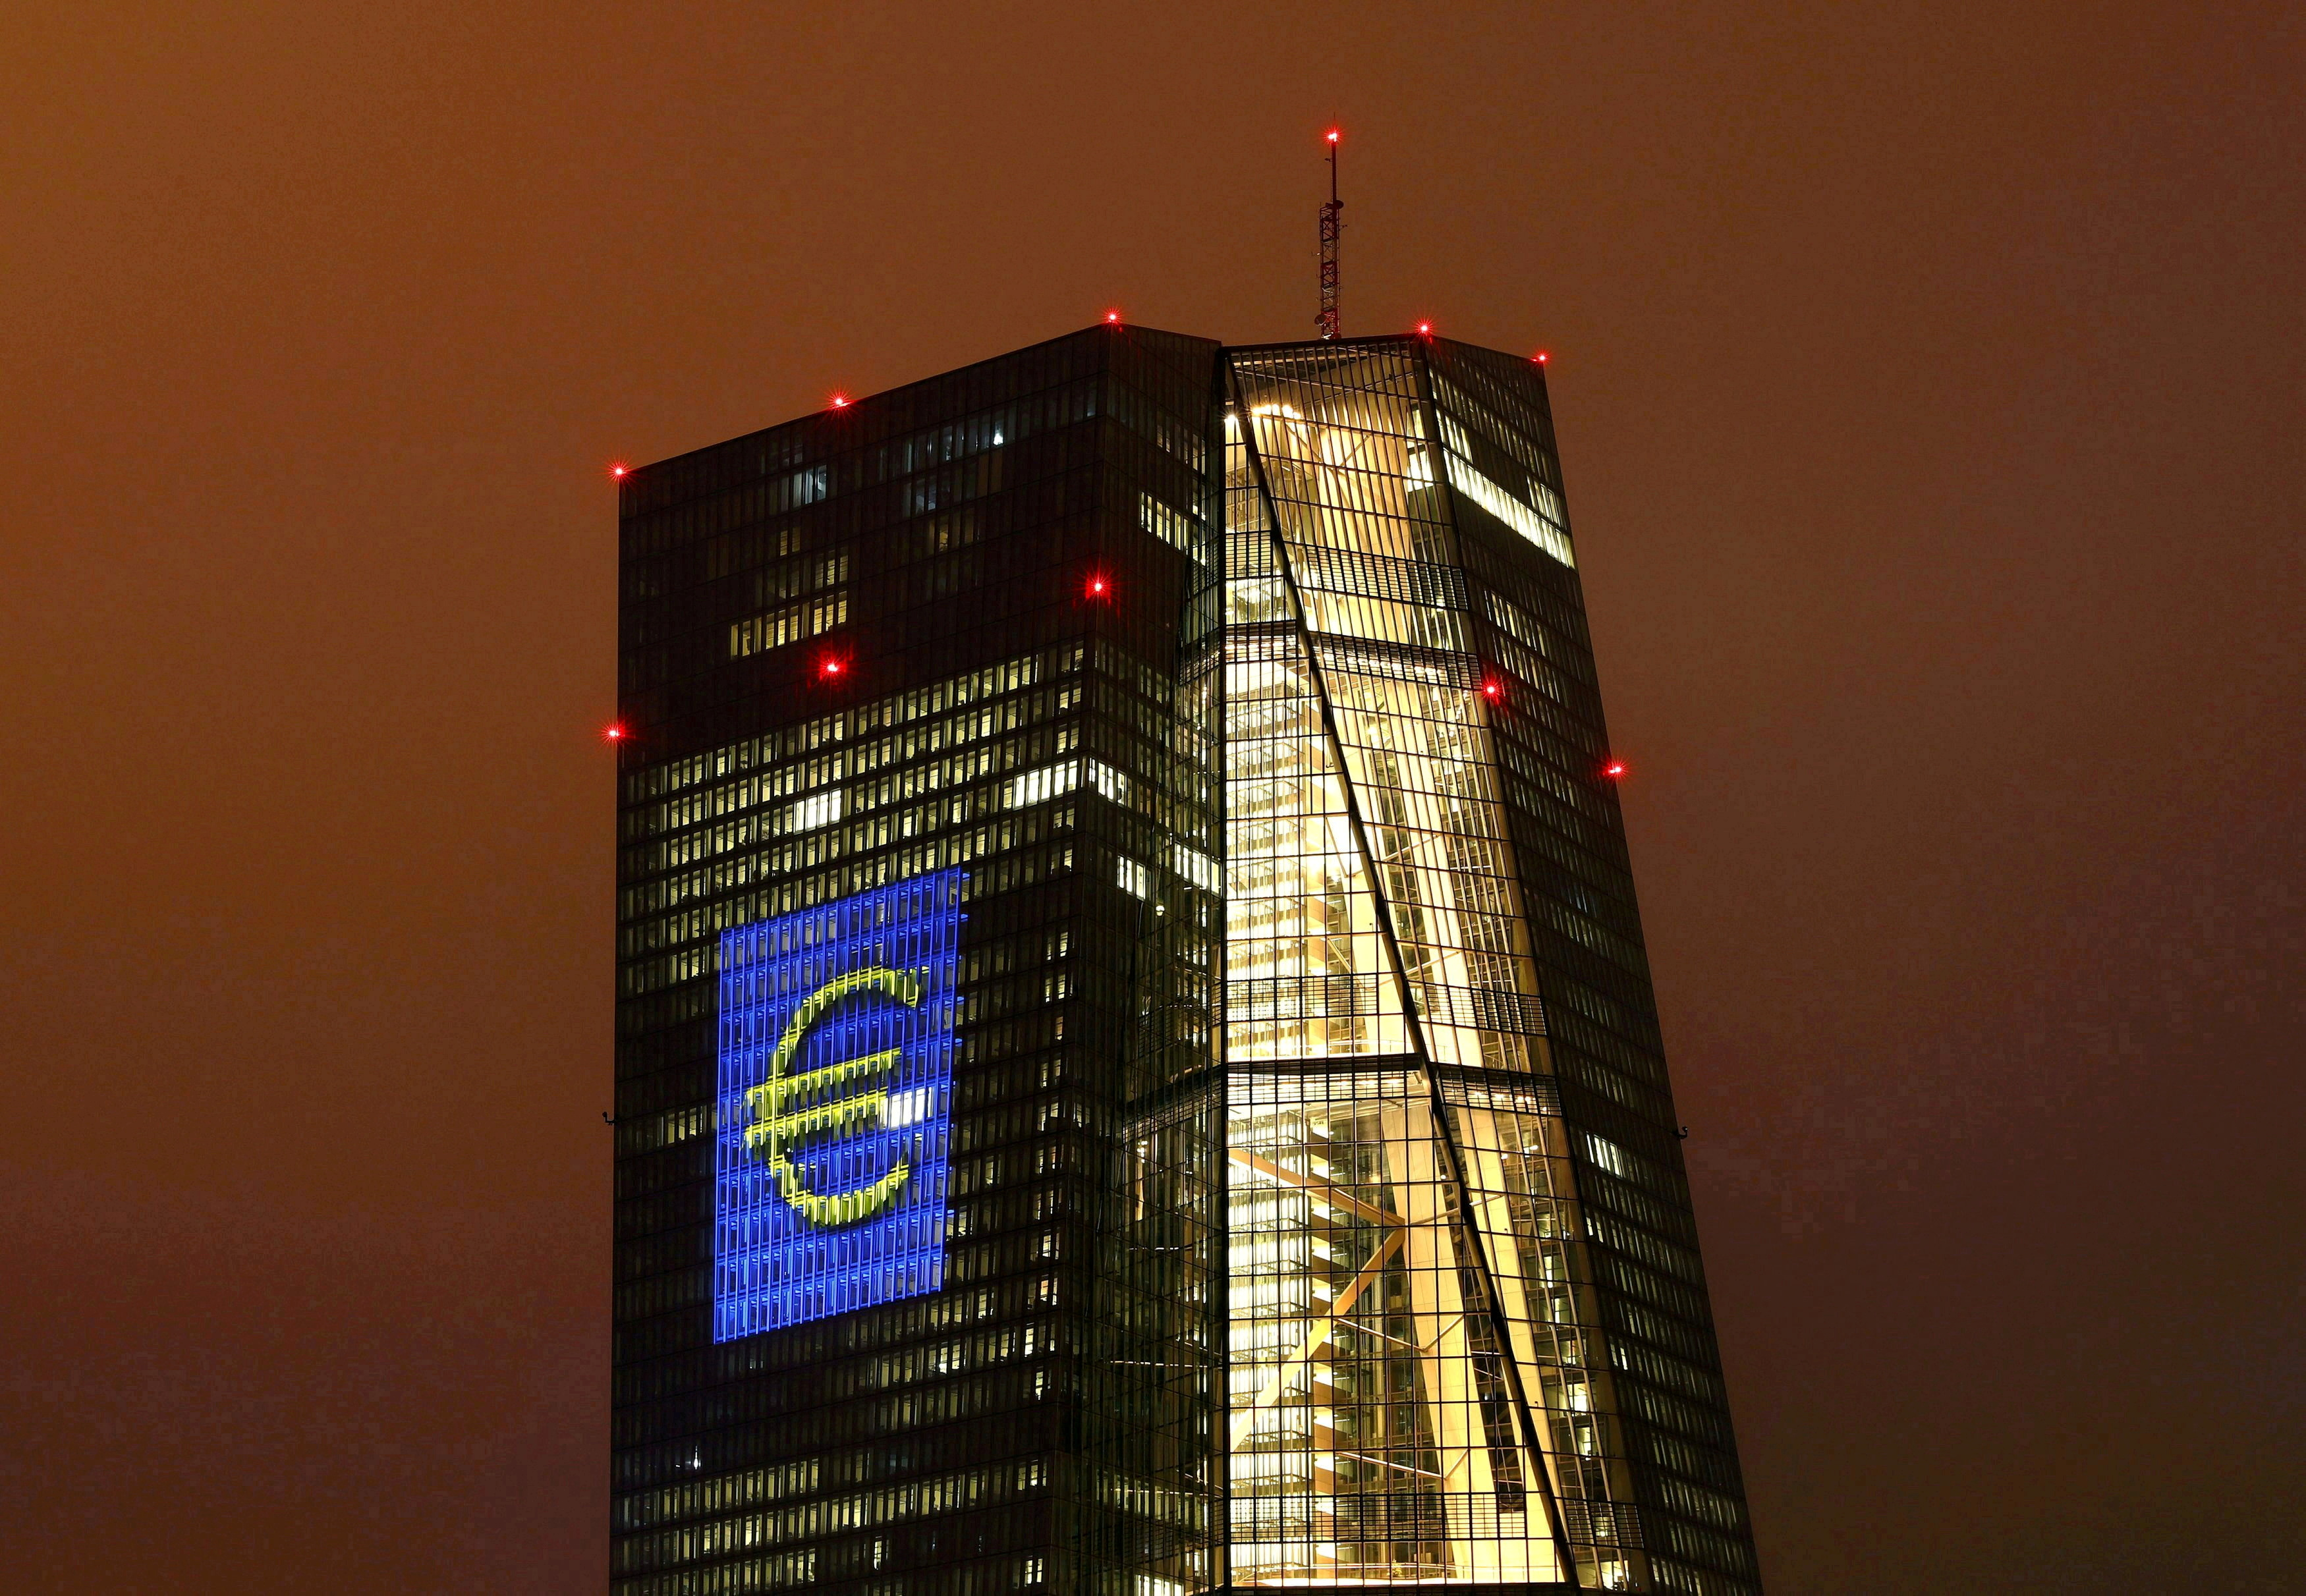 The headquarters of the European Central Bank (ECB) in Frankfurt, Germany, March 12, 2016. REUTERS/Kai Pfaffenbach/File Photo